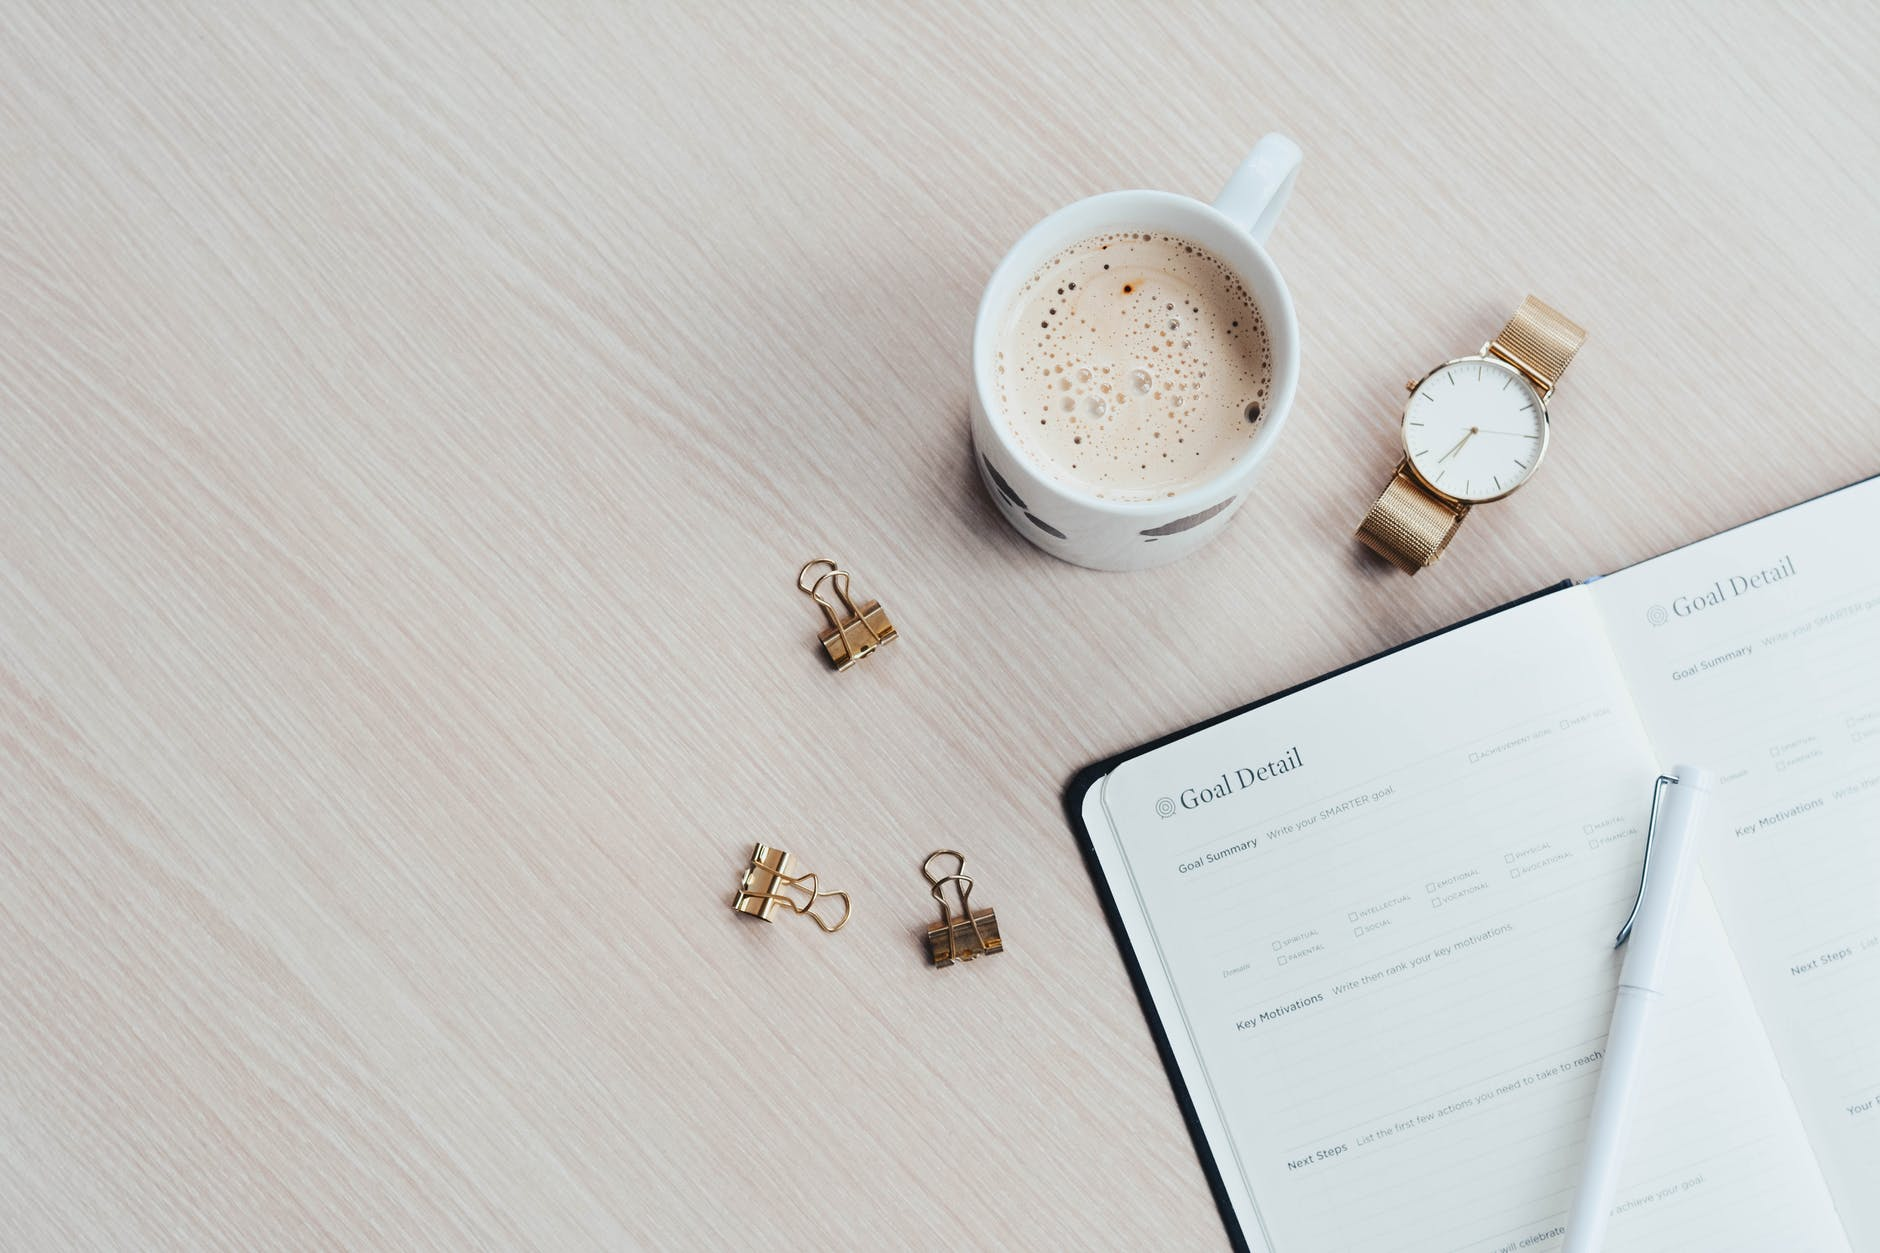 mug watch and planner book on brown wooden surface